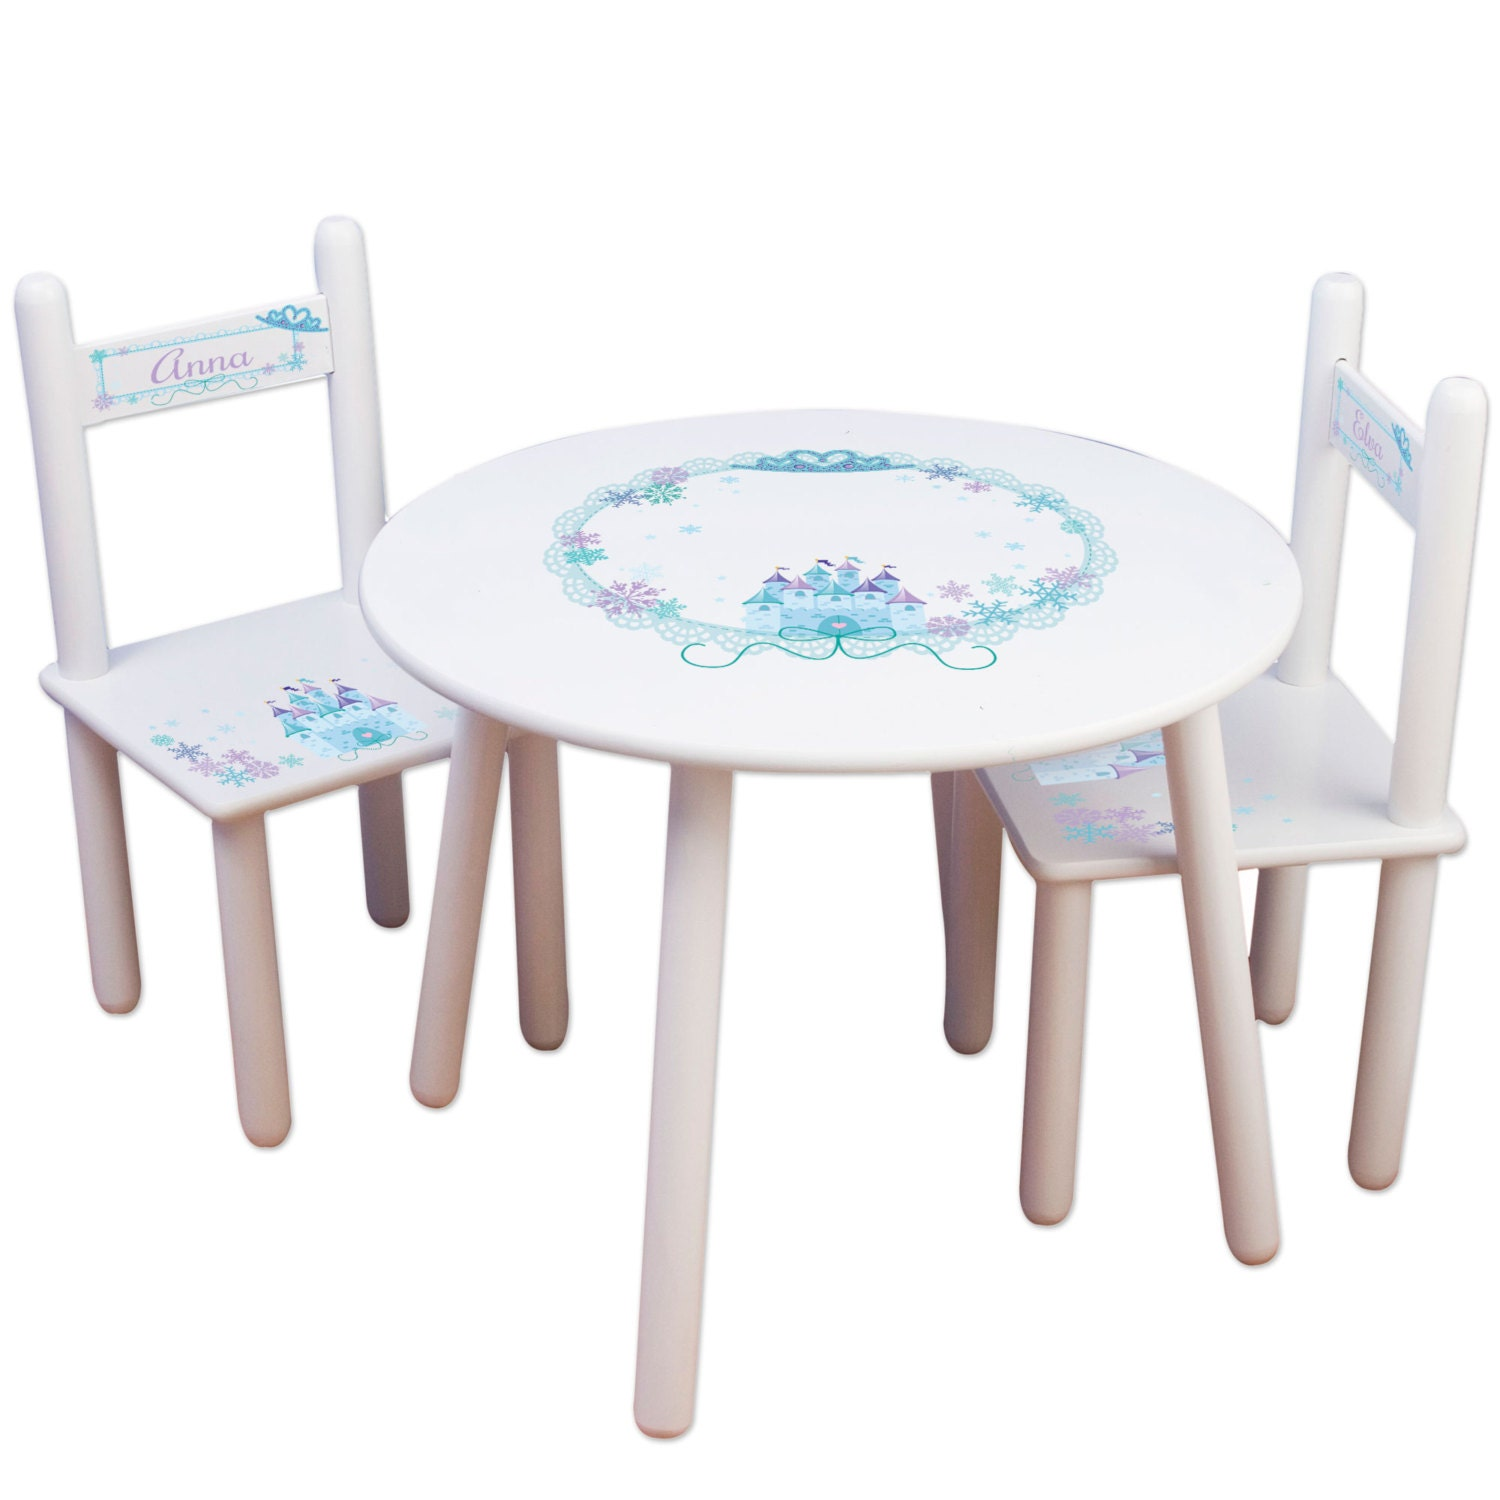 Girls Princess Table Chair Set Kids Furniture Childs Table